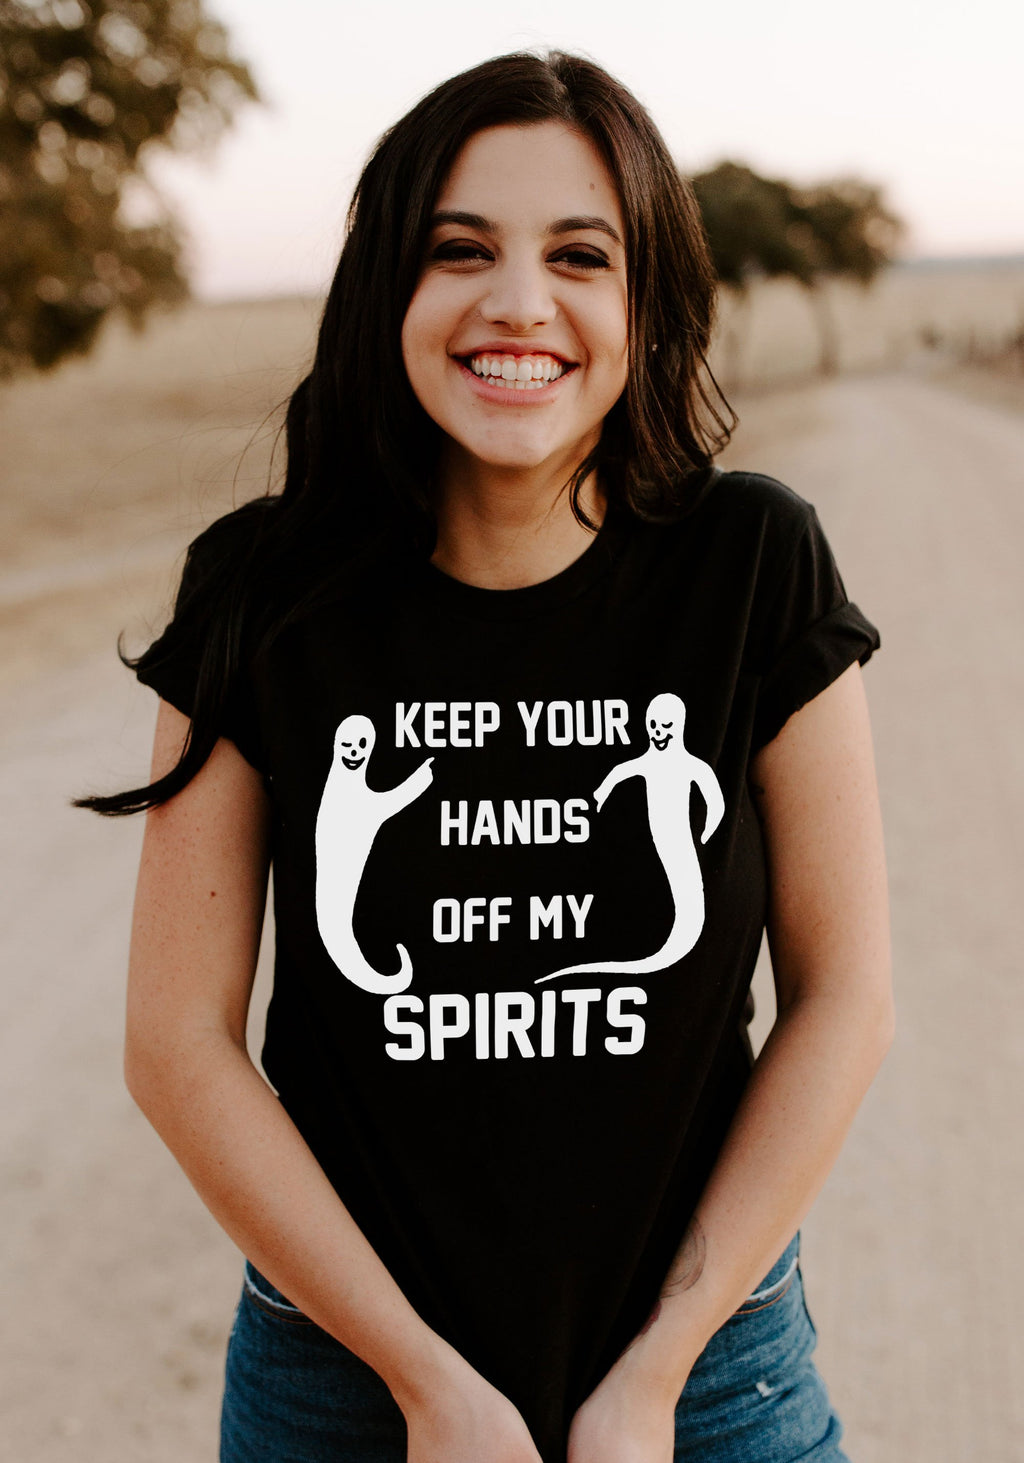 Hands Off My Spirits Tee / womens graphic tees / witch clothing tshirt / halloween shirt women / cute ghost ghoul mystical witchy gifts